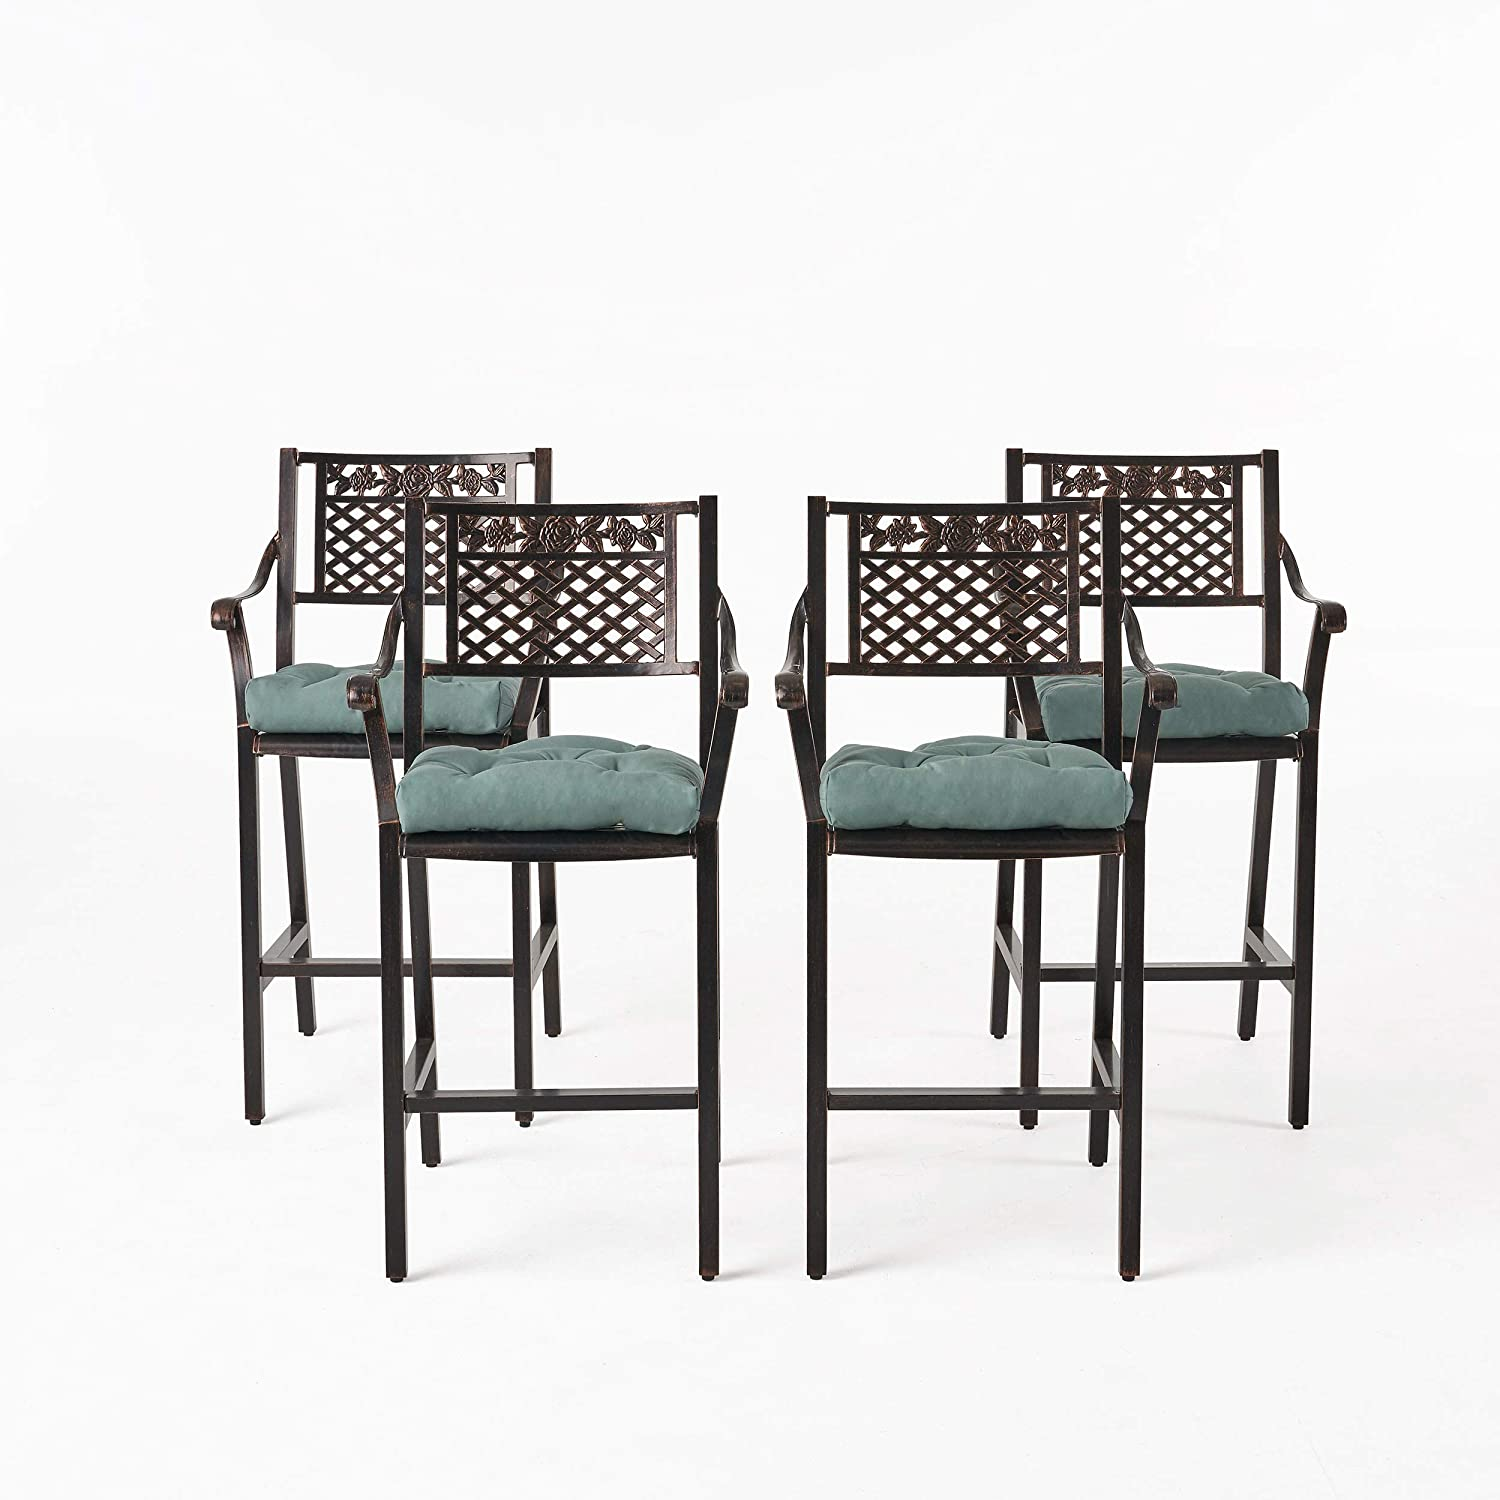 Great Deal Furniture Ellen Outdoor Barstool with Cushion (Set of 4), Shiny Copper and Teal